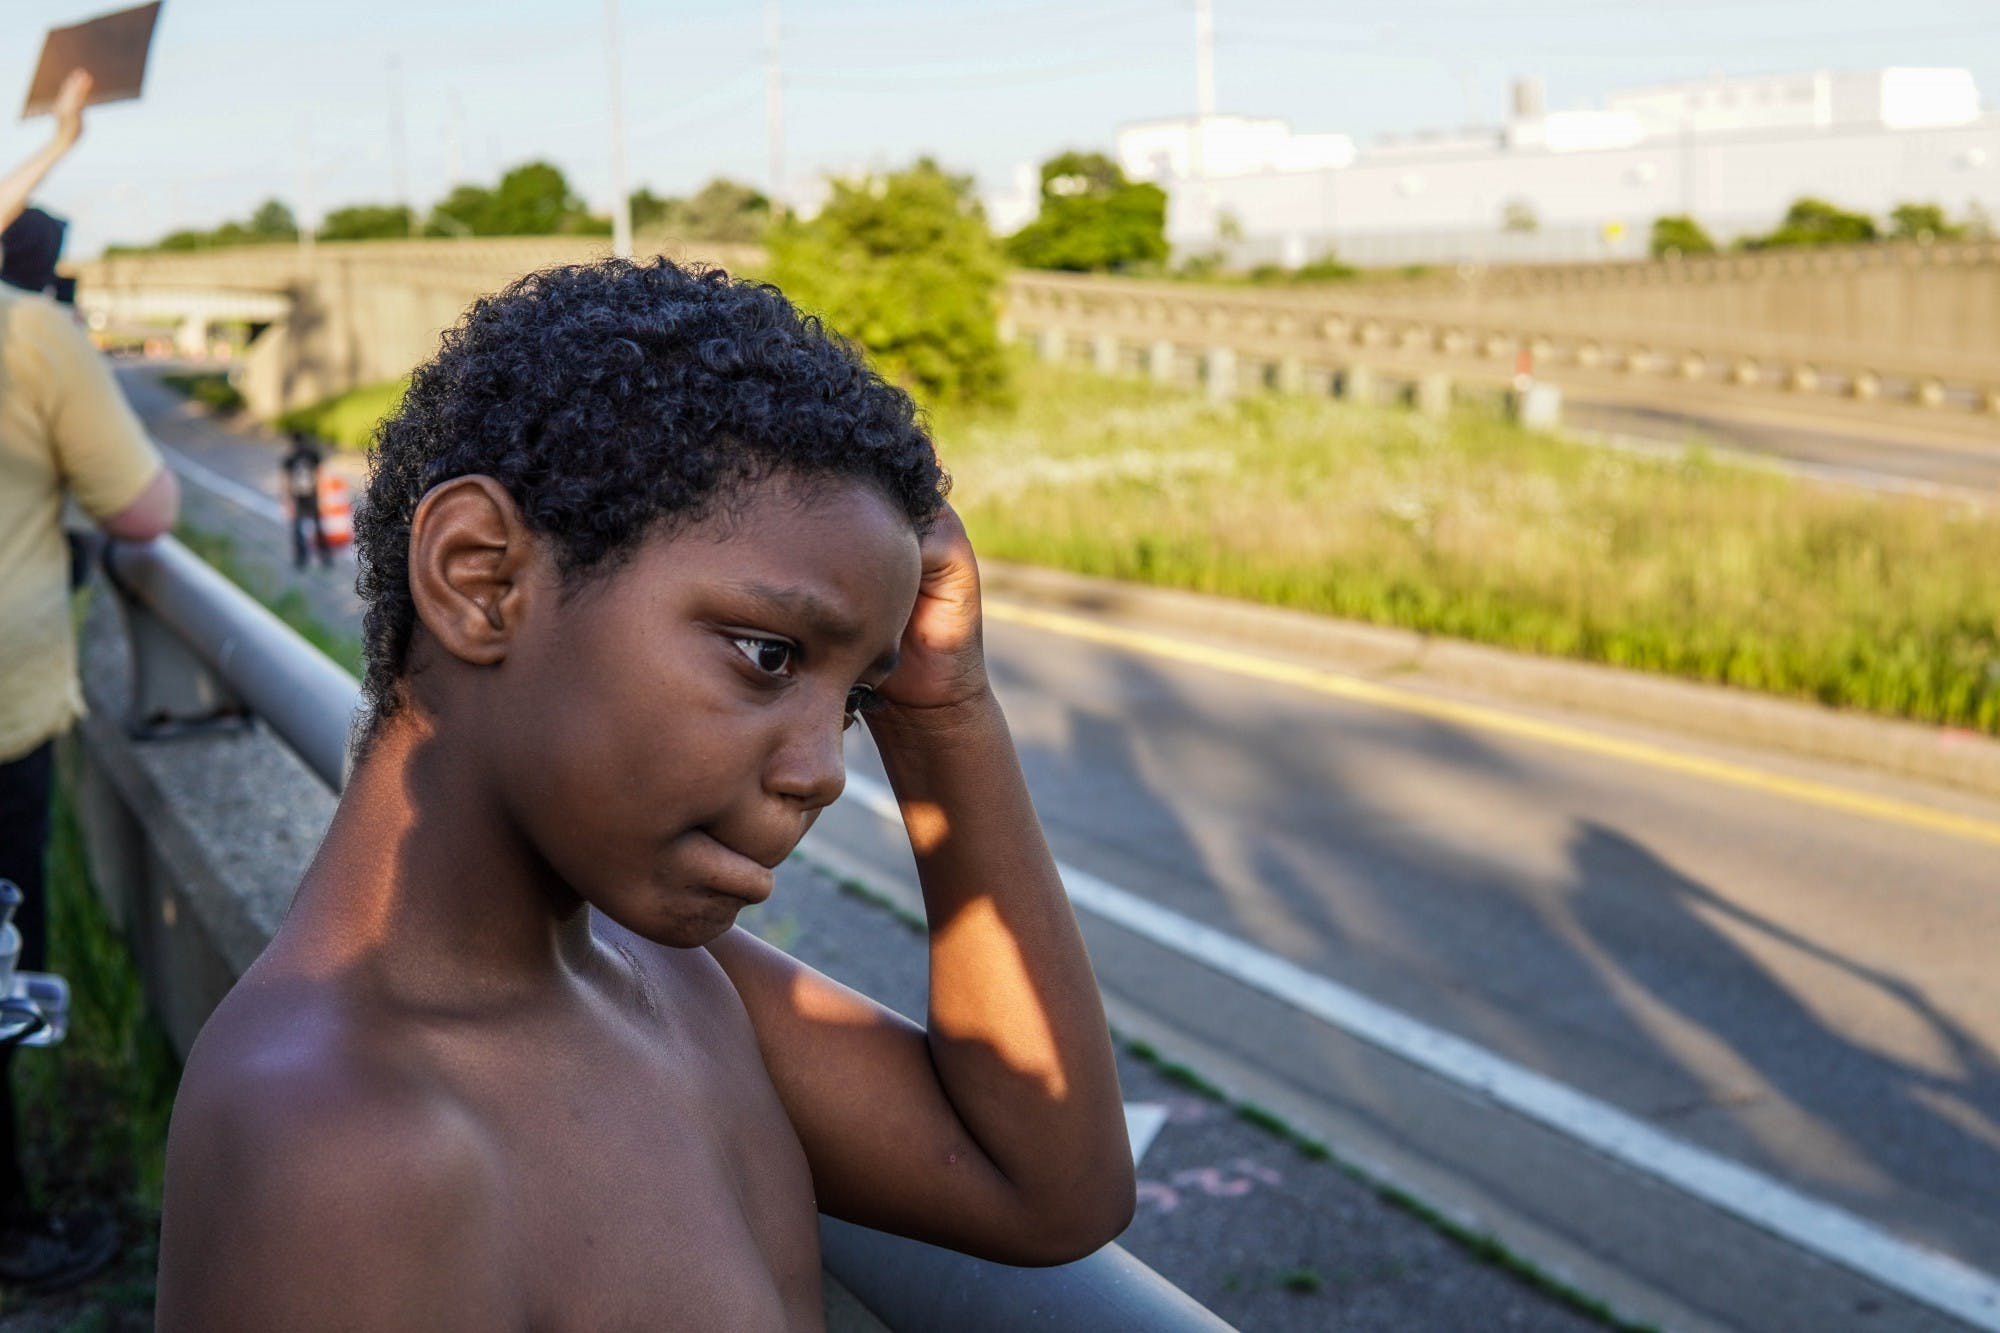 A young child rests his head on his arm, his arm on a railing that looks over a road.